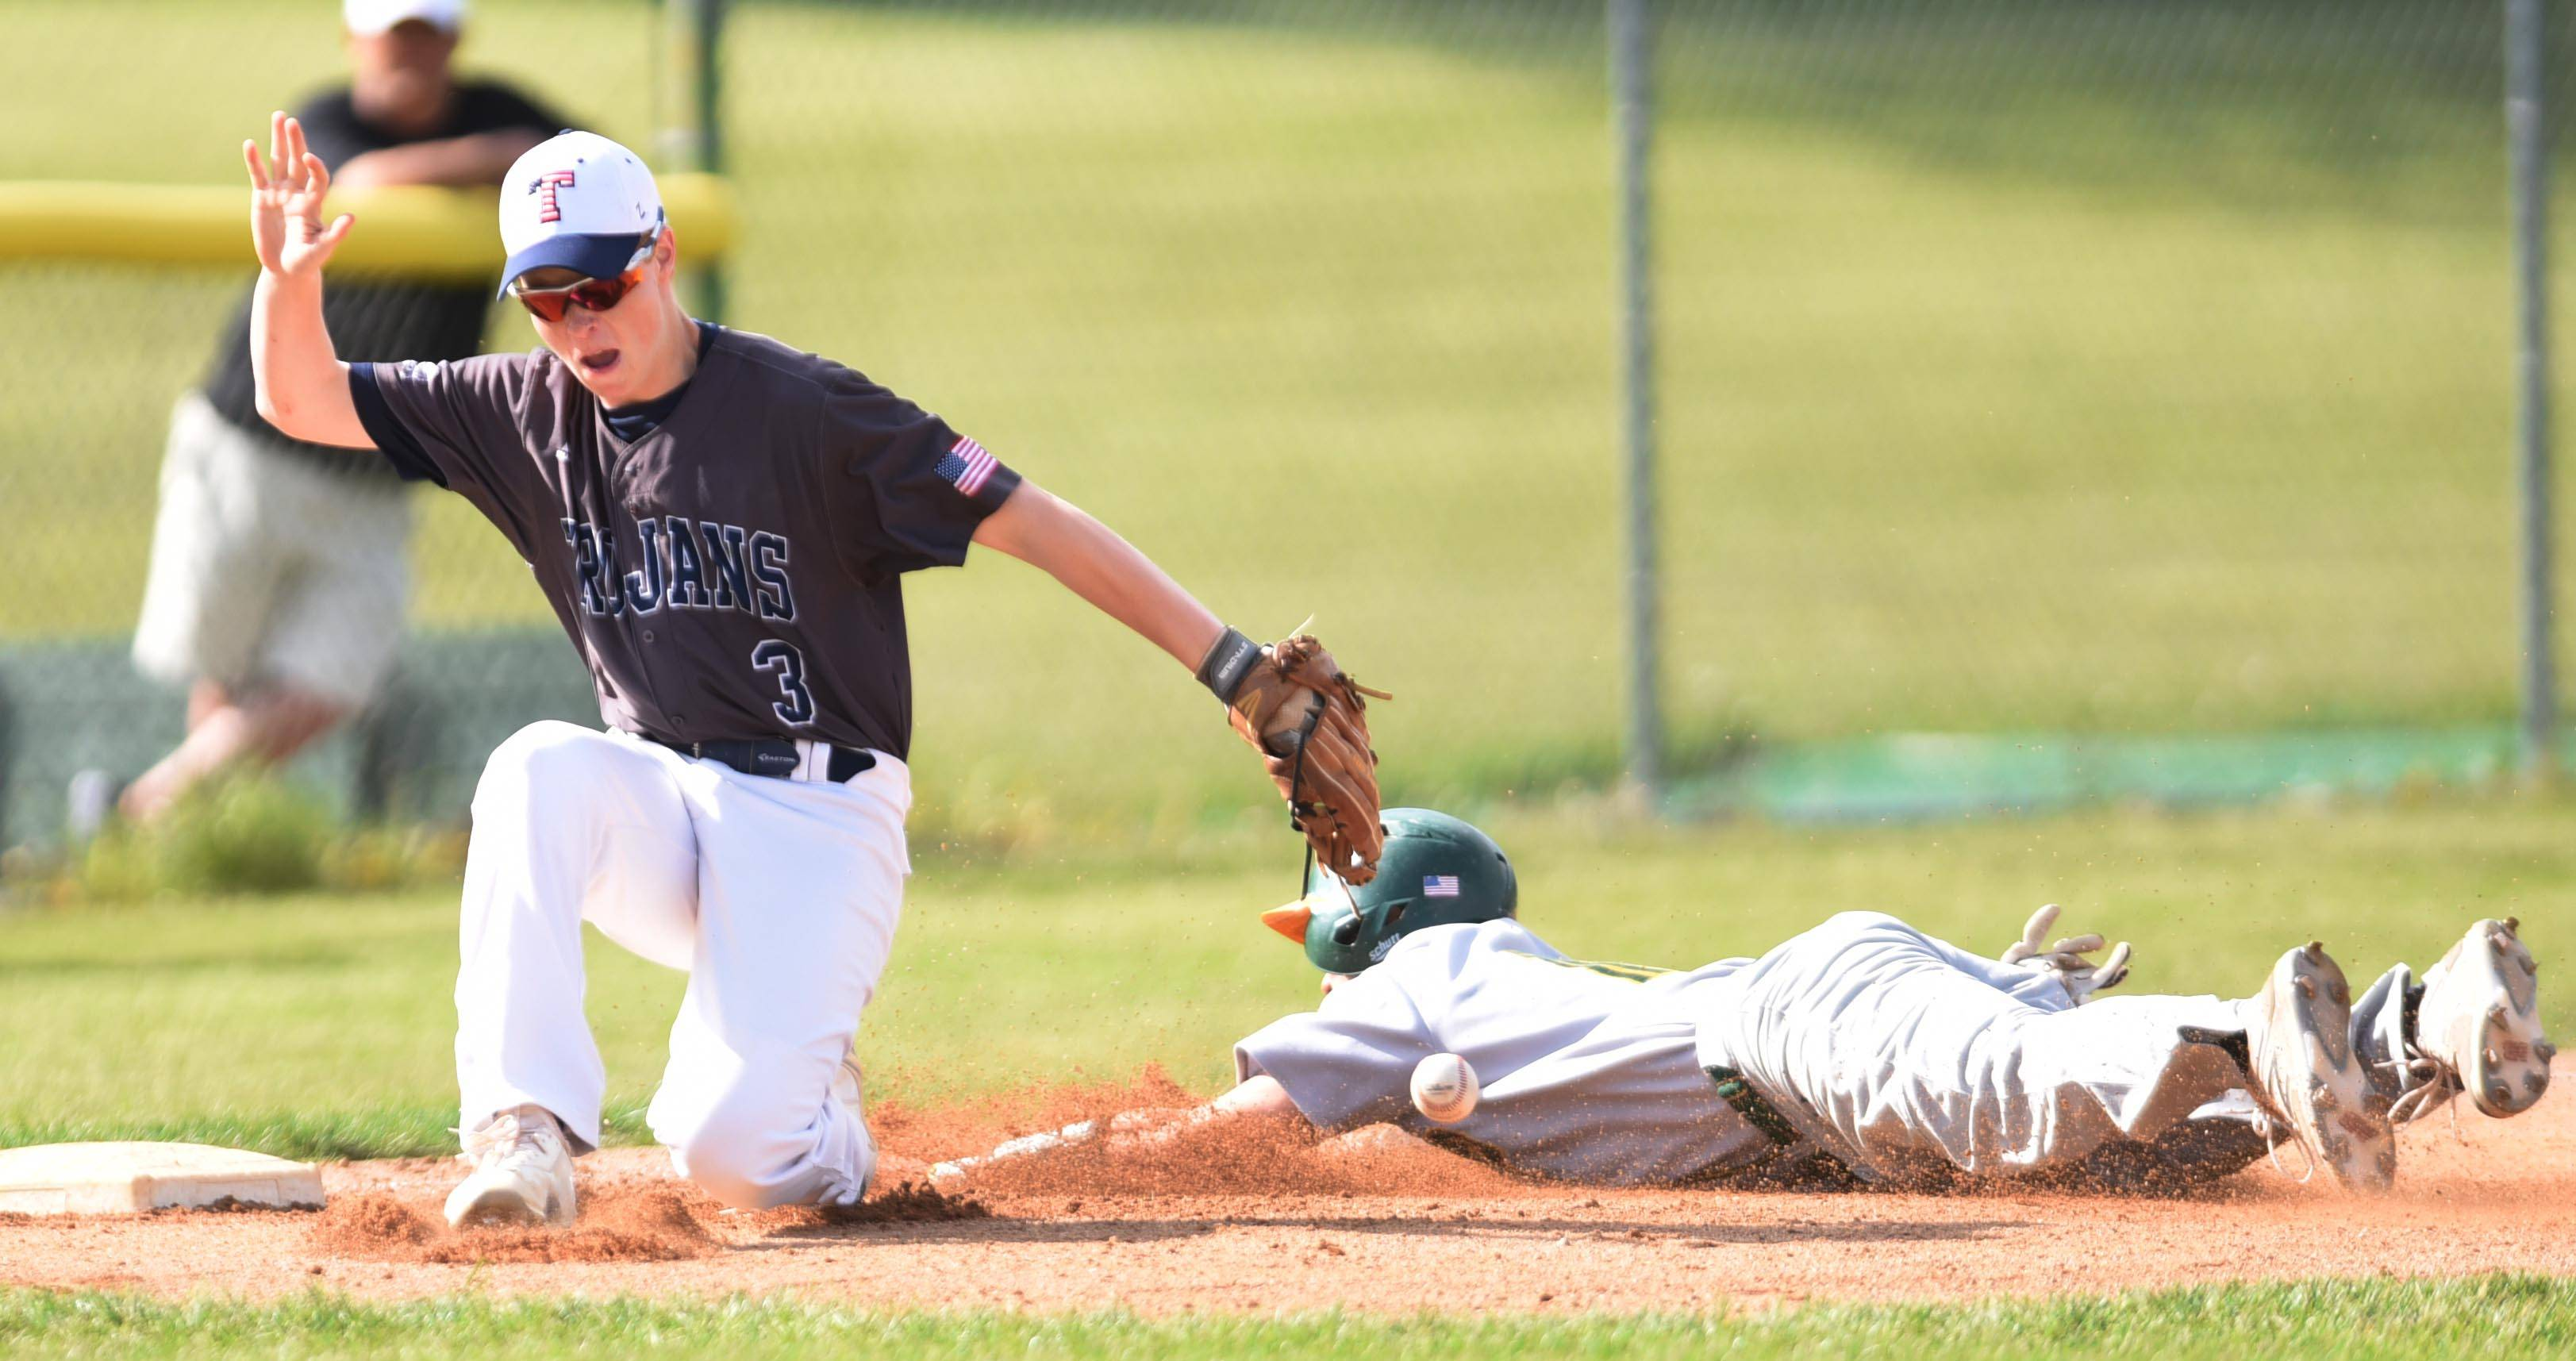 Crystal Lake South's Brent Chubb slides safely into third as Cary-Grove's Luc Bressett loses control of the ball in the first inning Thursday in Cary.